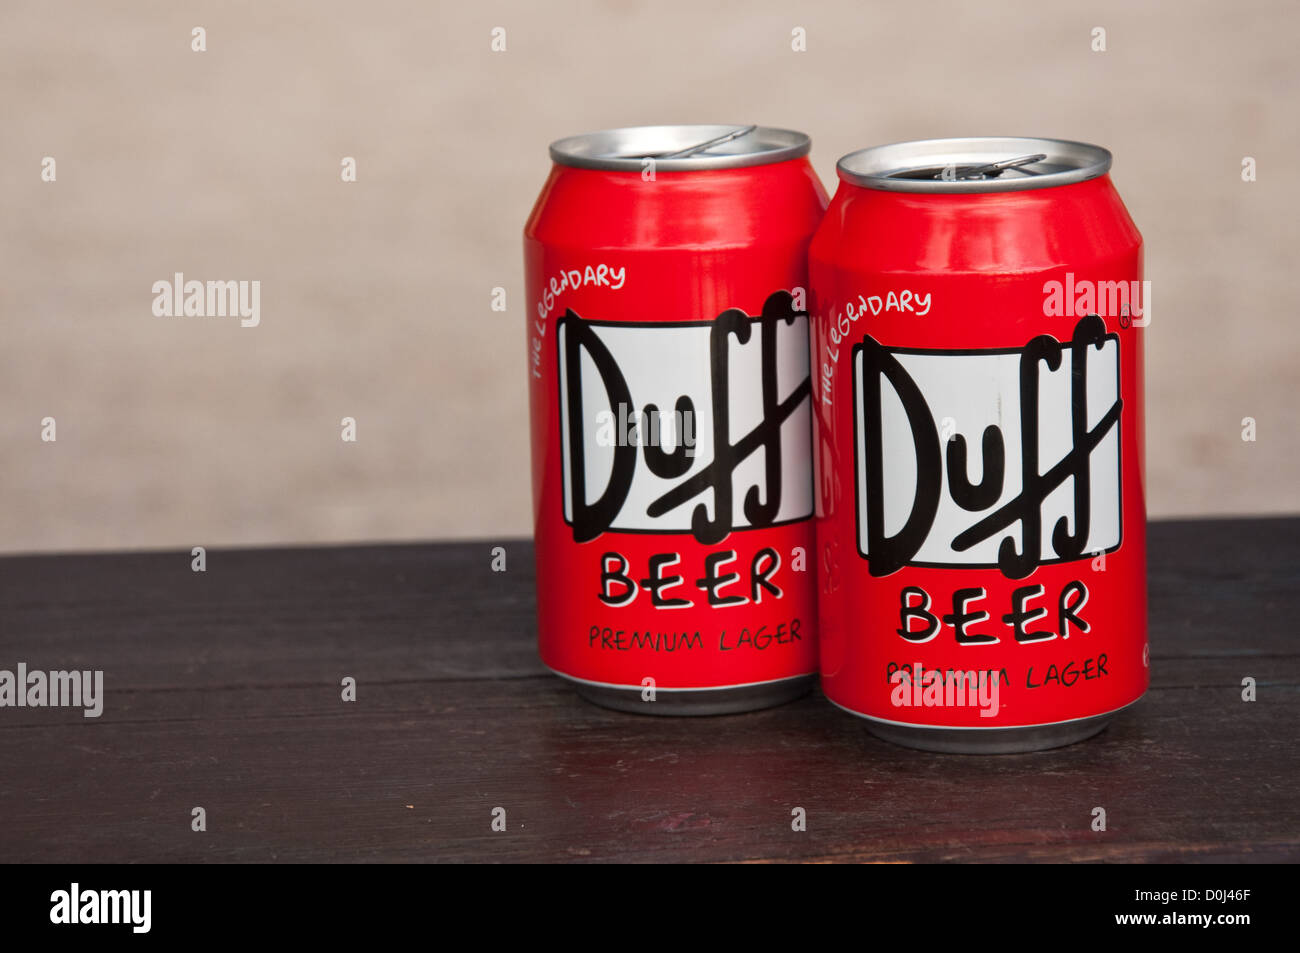 Two cans of famous Duff beer Stock Photo